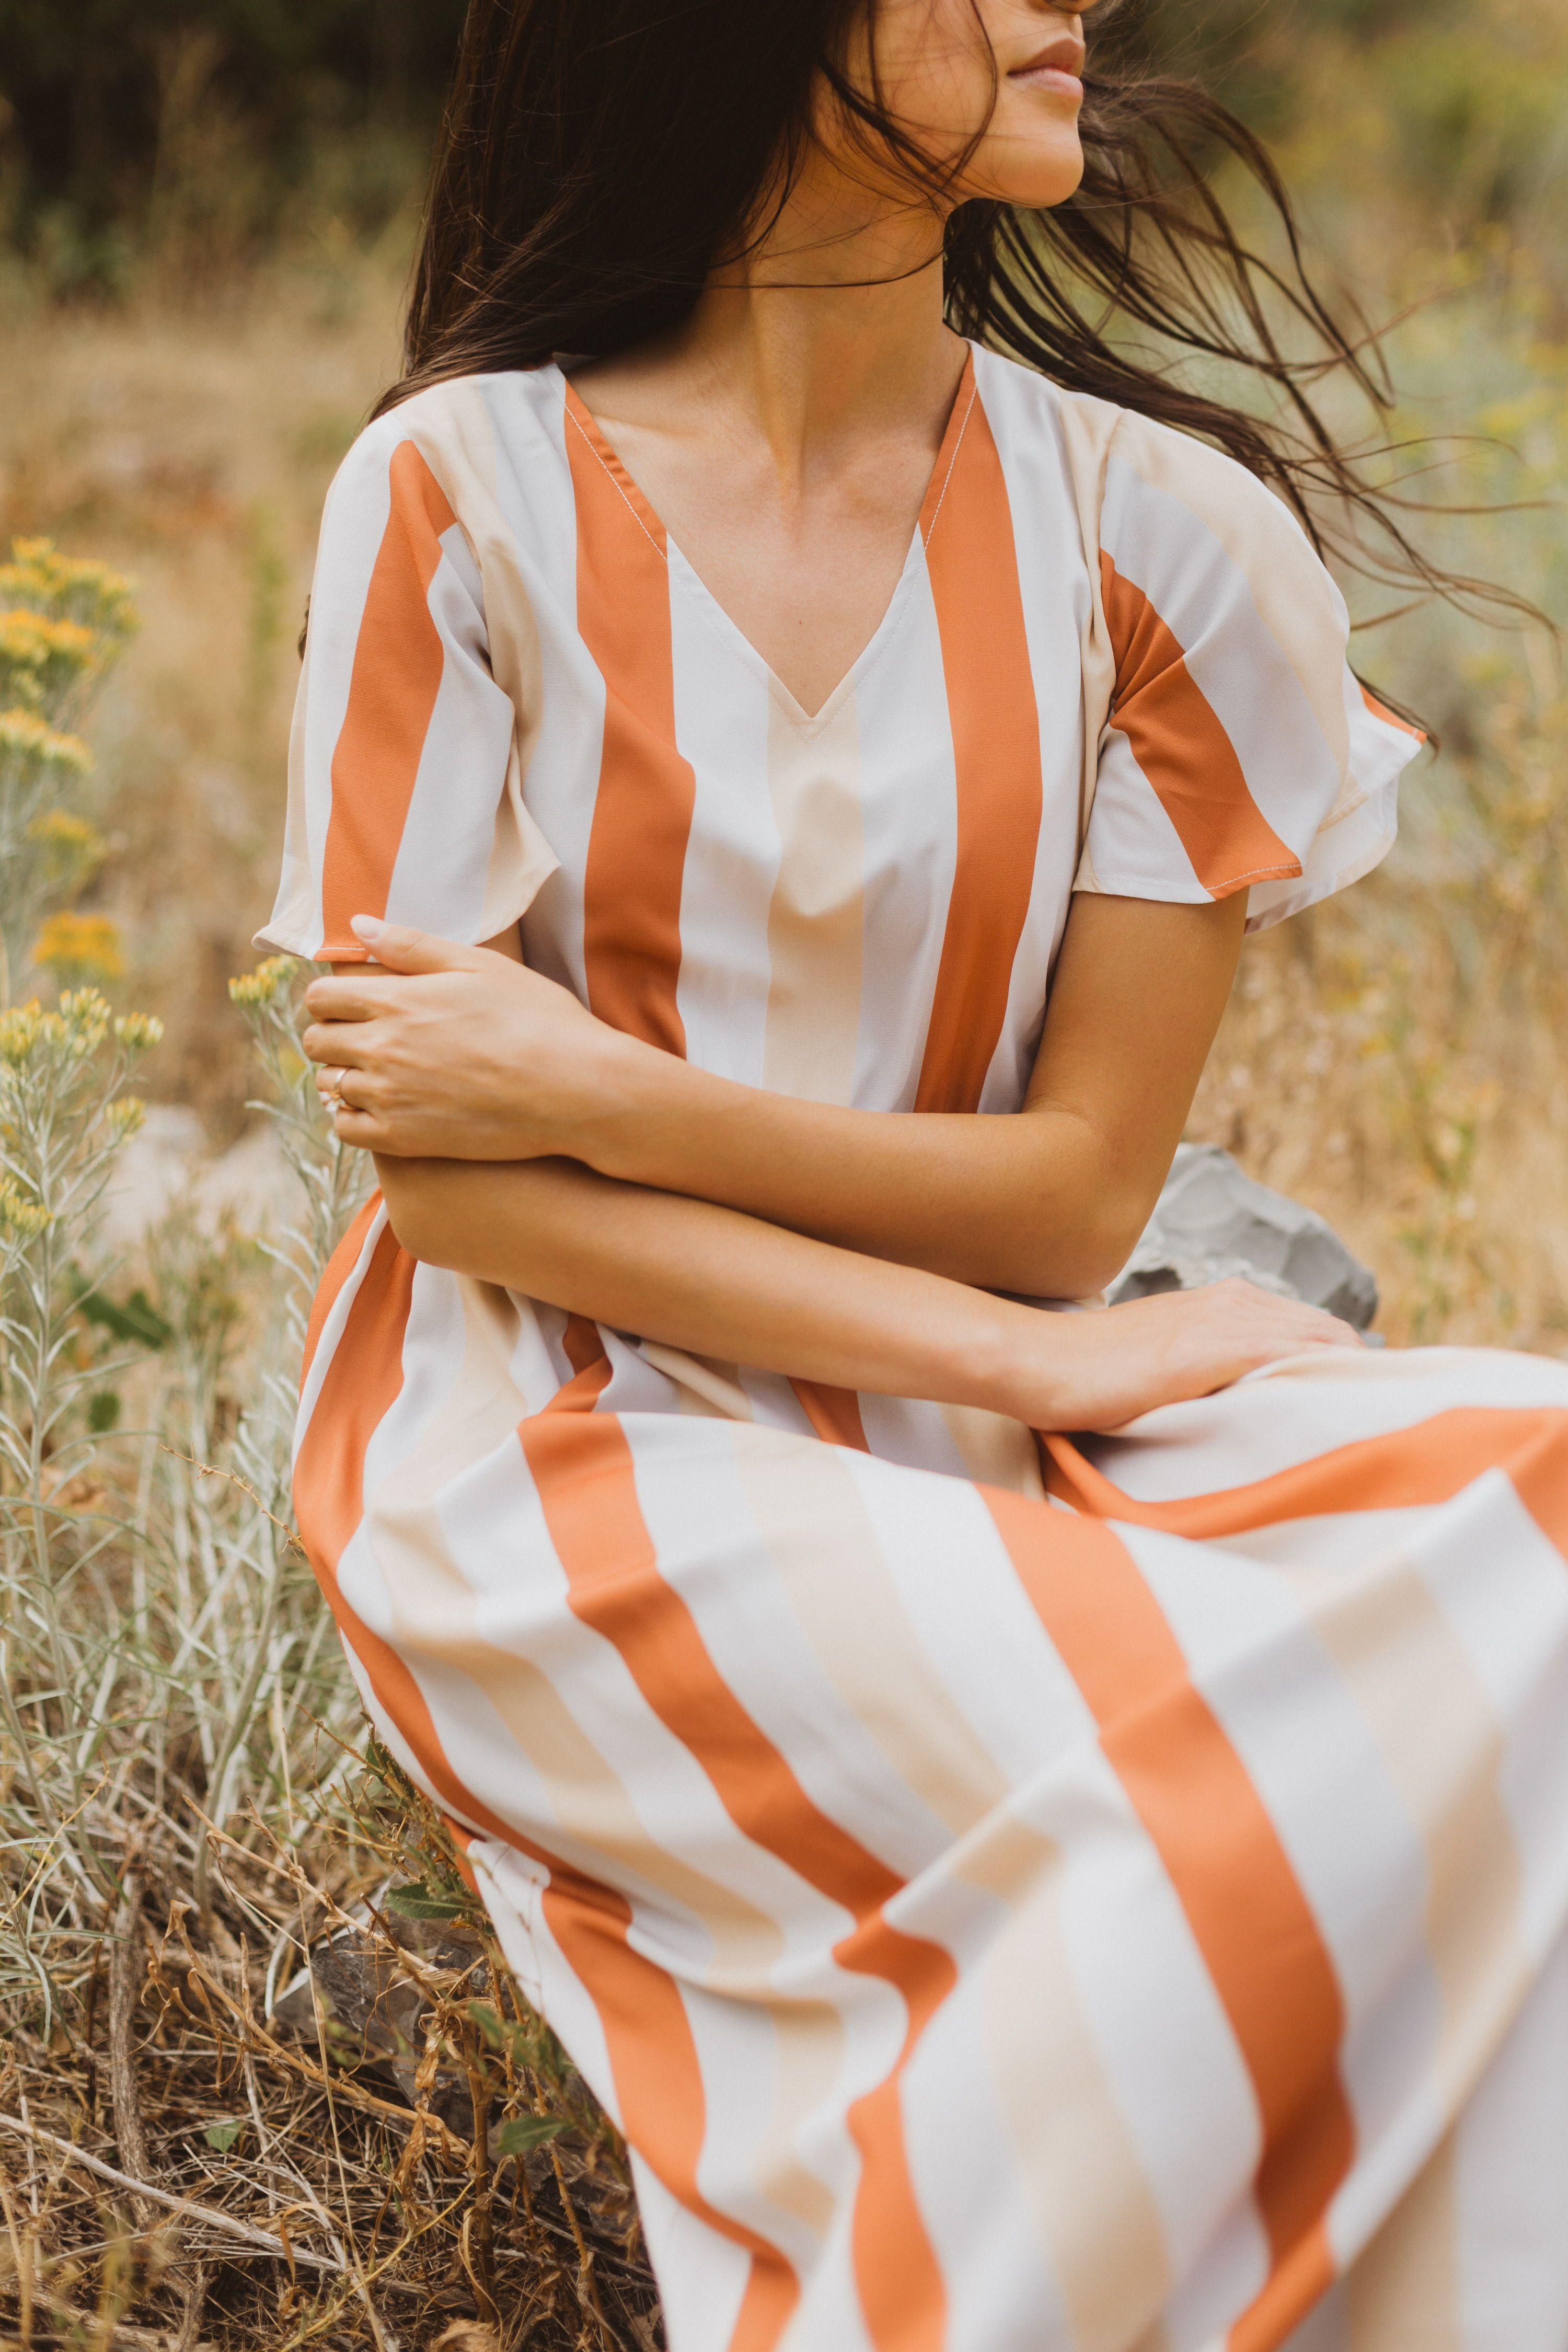 The Butler Striped Maxi Dress Features A Soft V Neckline With Vertical Stripes Down In Pumpkin Pale Peach Agains Striped Maxi Maxi Dress Striped Maxi Dresses [ 4500 x 3000 Pixel ]